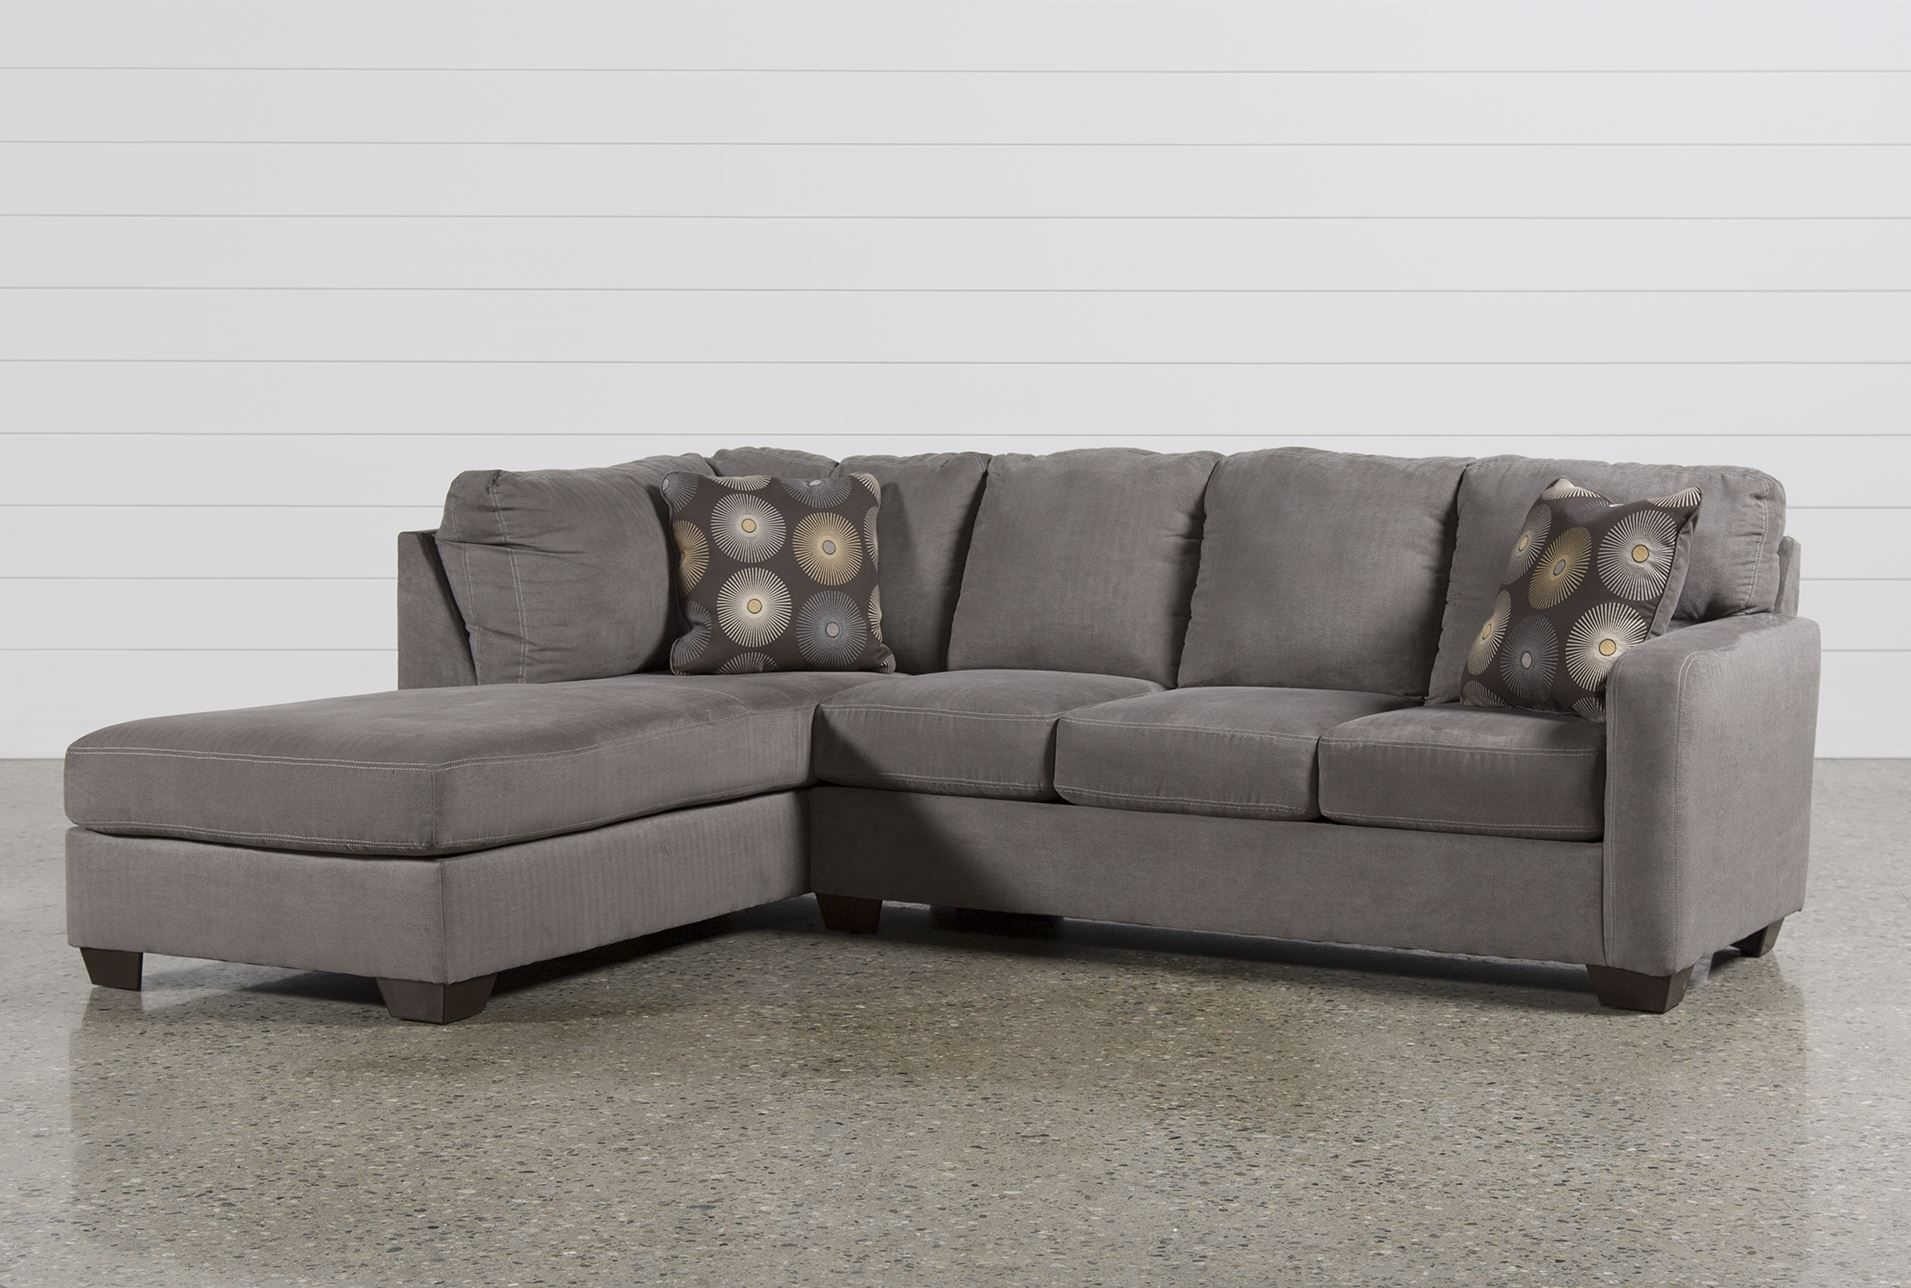 Zella Charcoal 2 Piece Sectional W/laf Chaise – Signature With Aspen 2 Piece Sleeper Sectionals With Laf Chaise (Image 25 of 25)